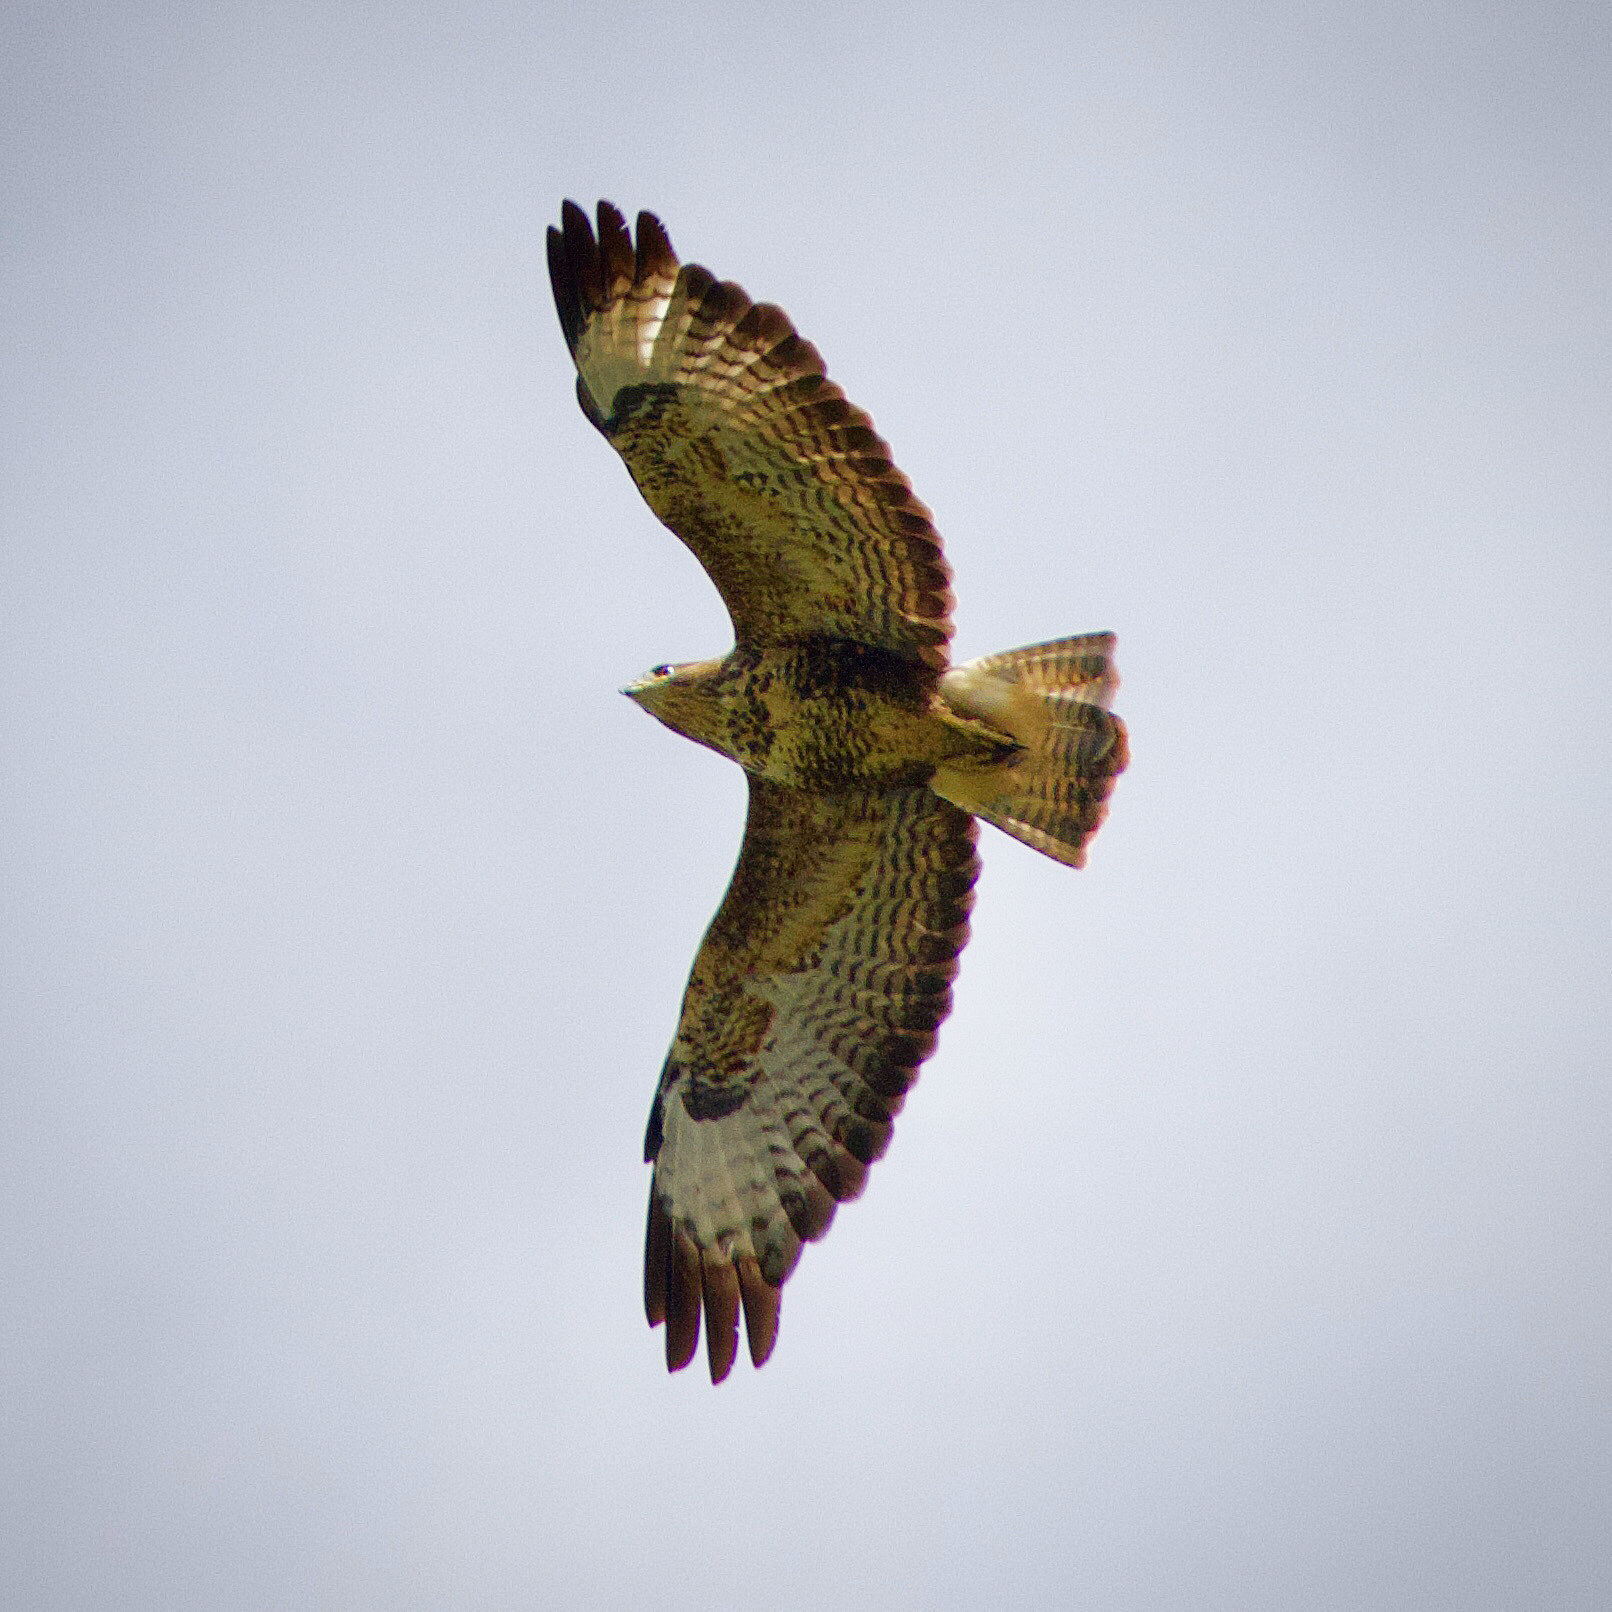 A common buzzard in flight.